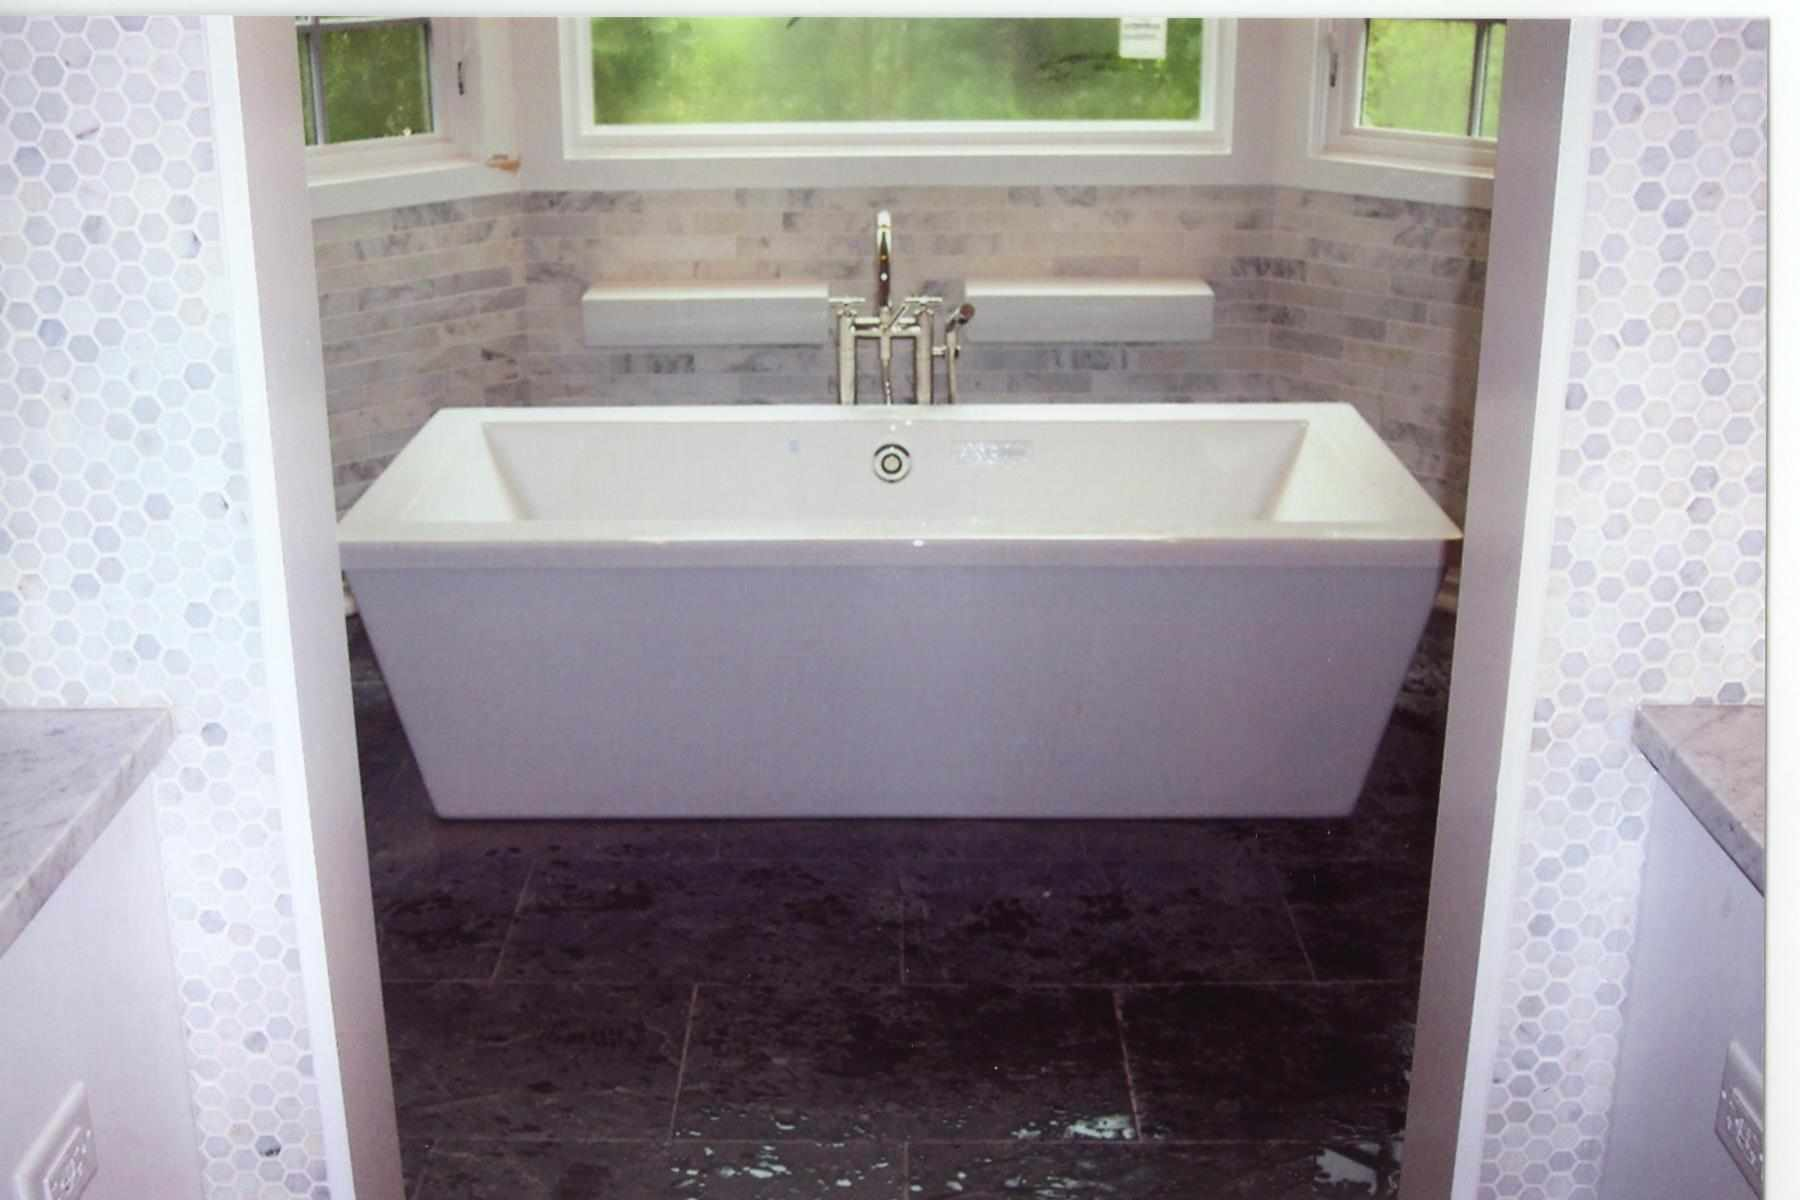 Marble Bathroom Tub Installation Naperville - JW Construction & Design Services